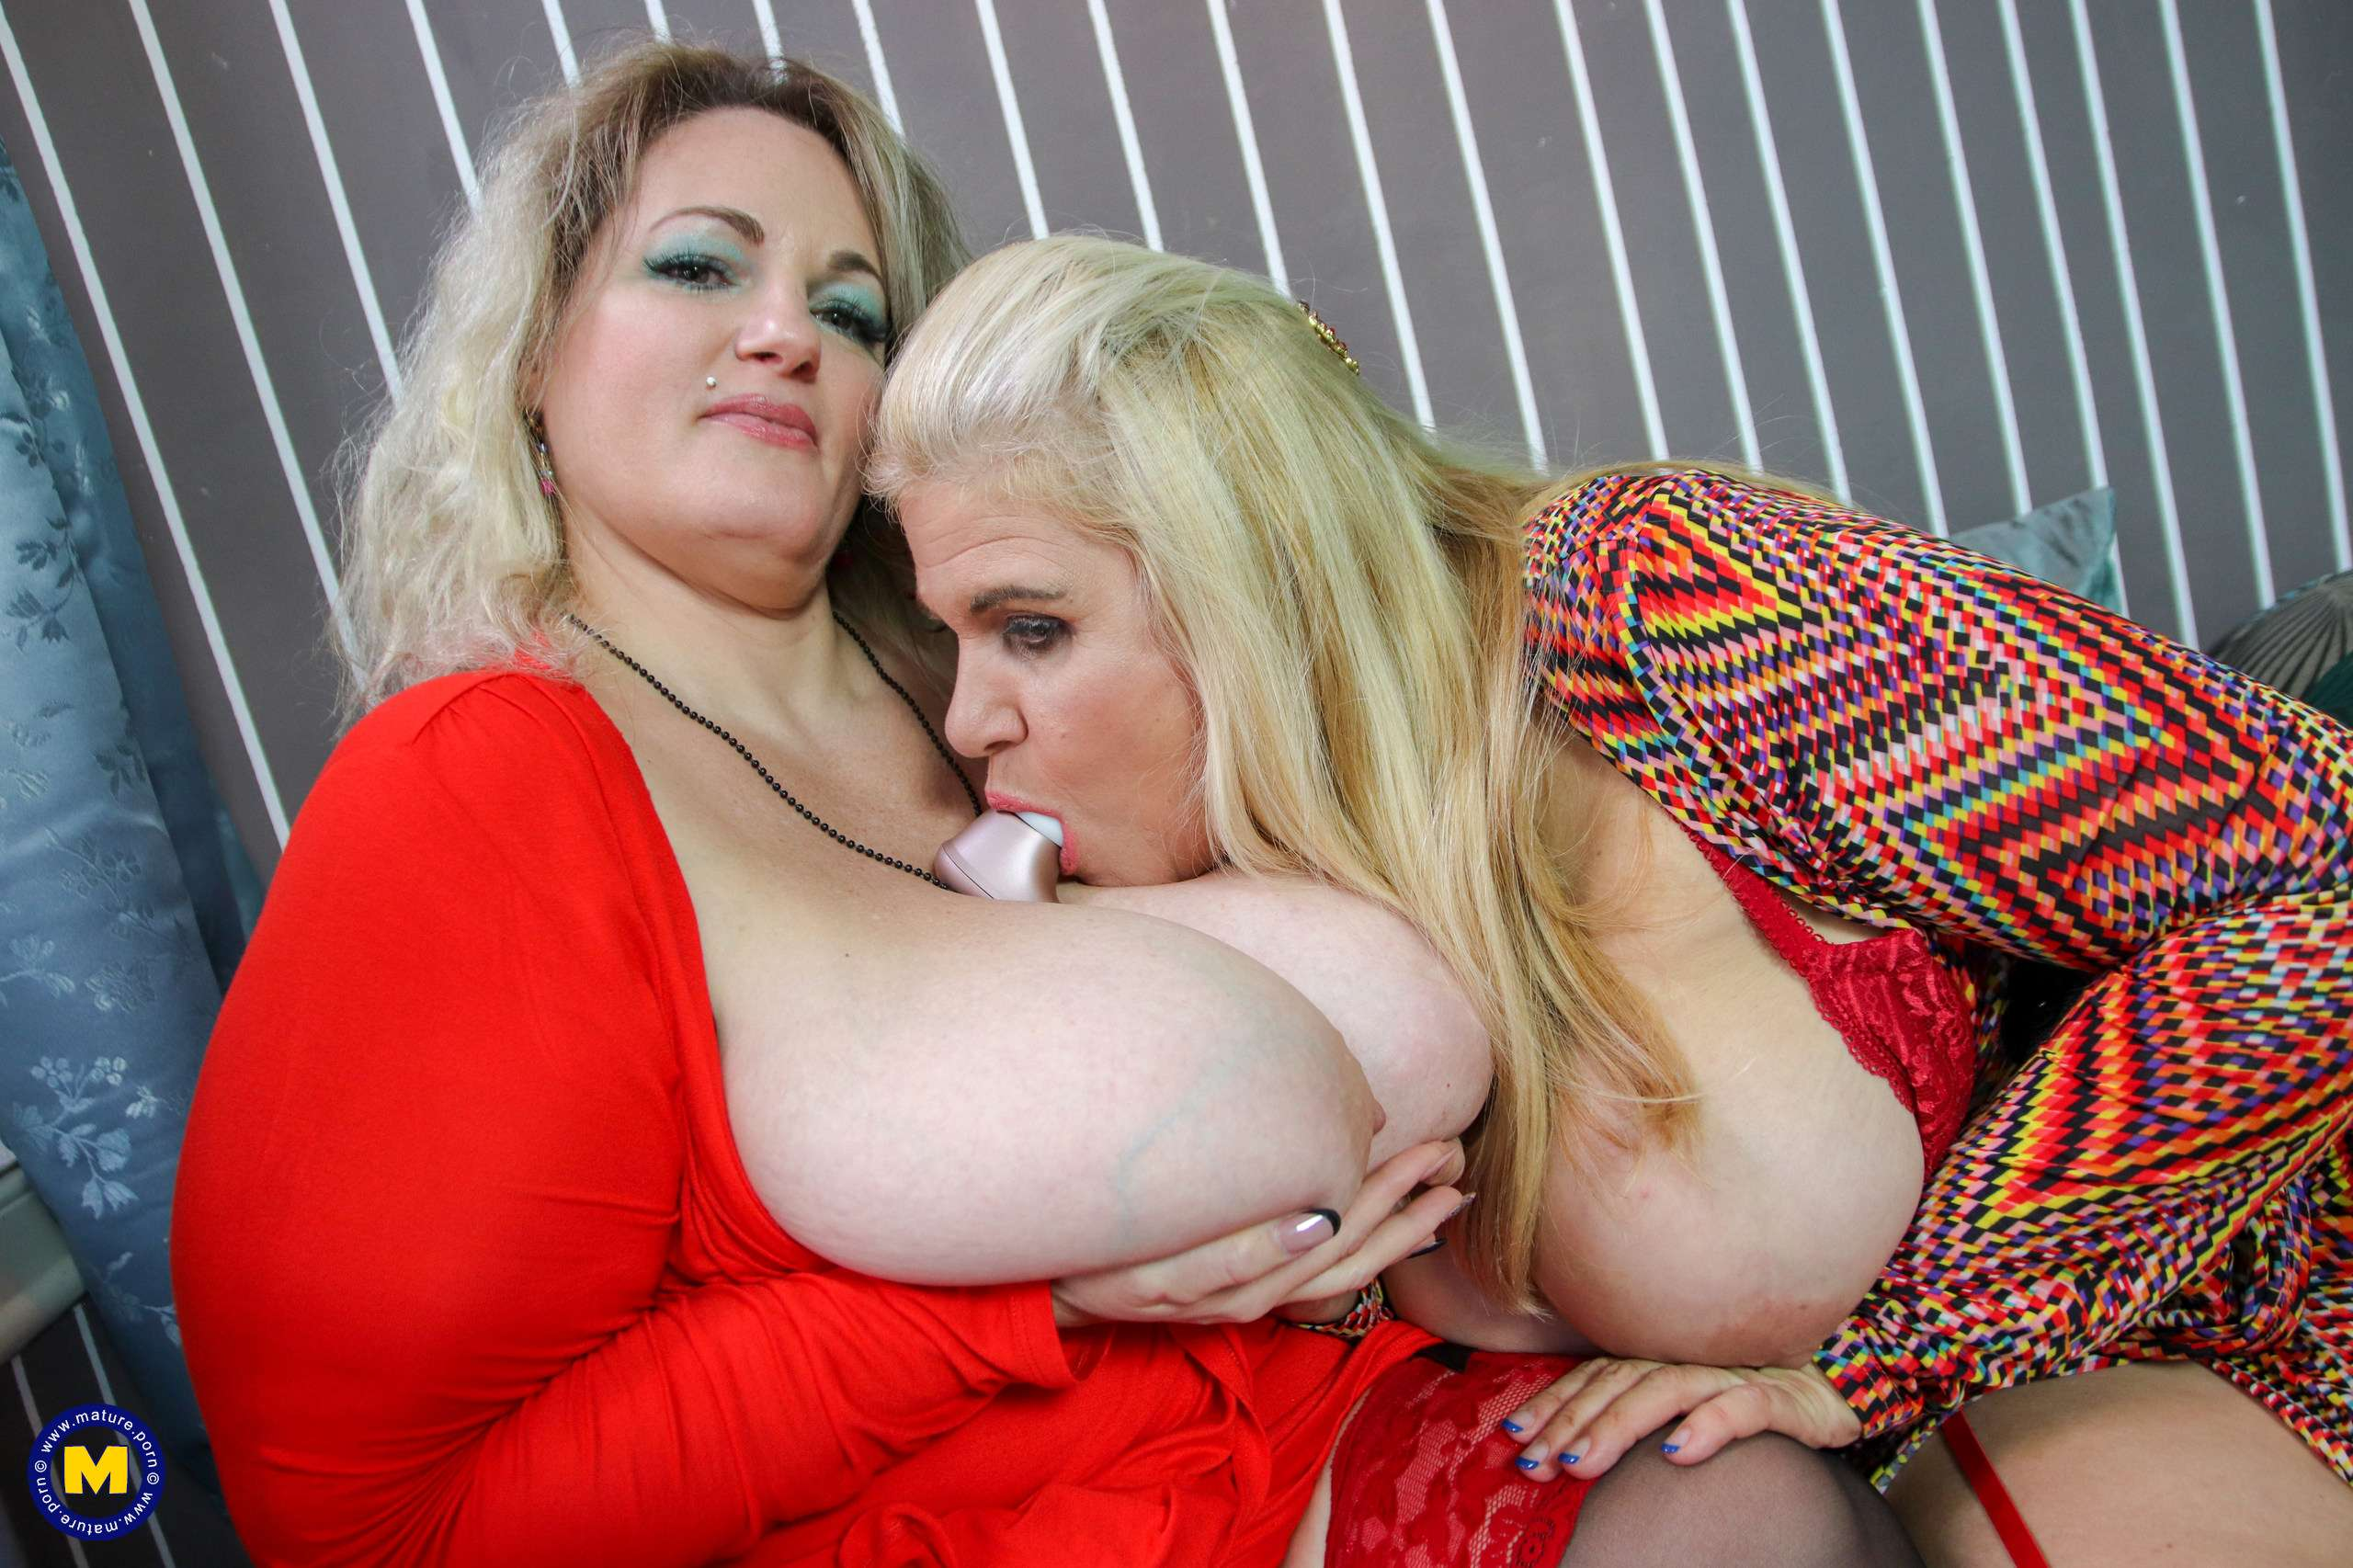 These big breasted mature ladies go lesbian after their date